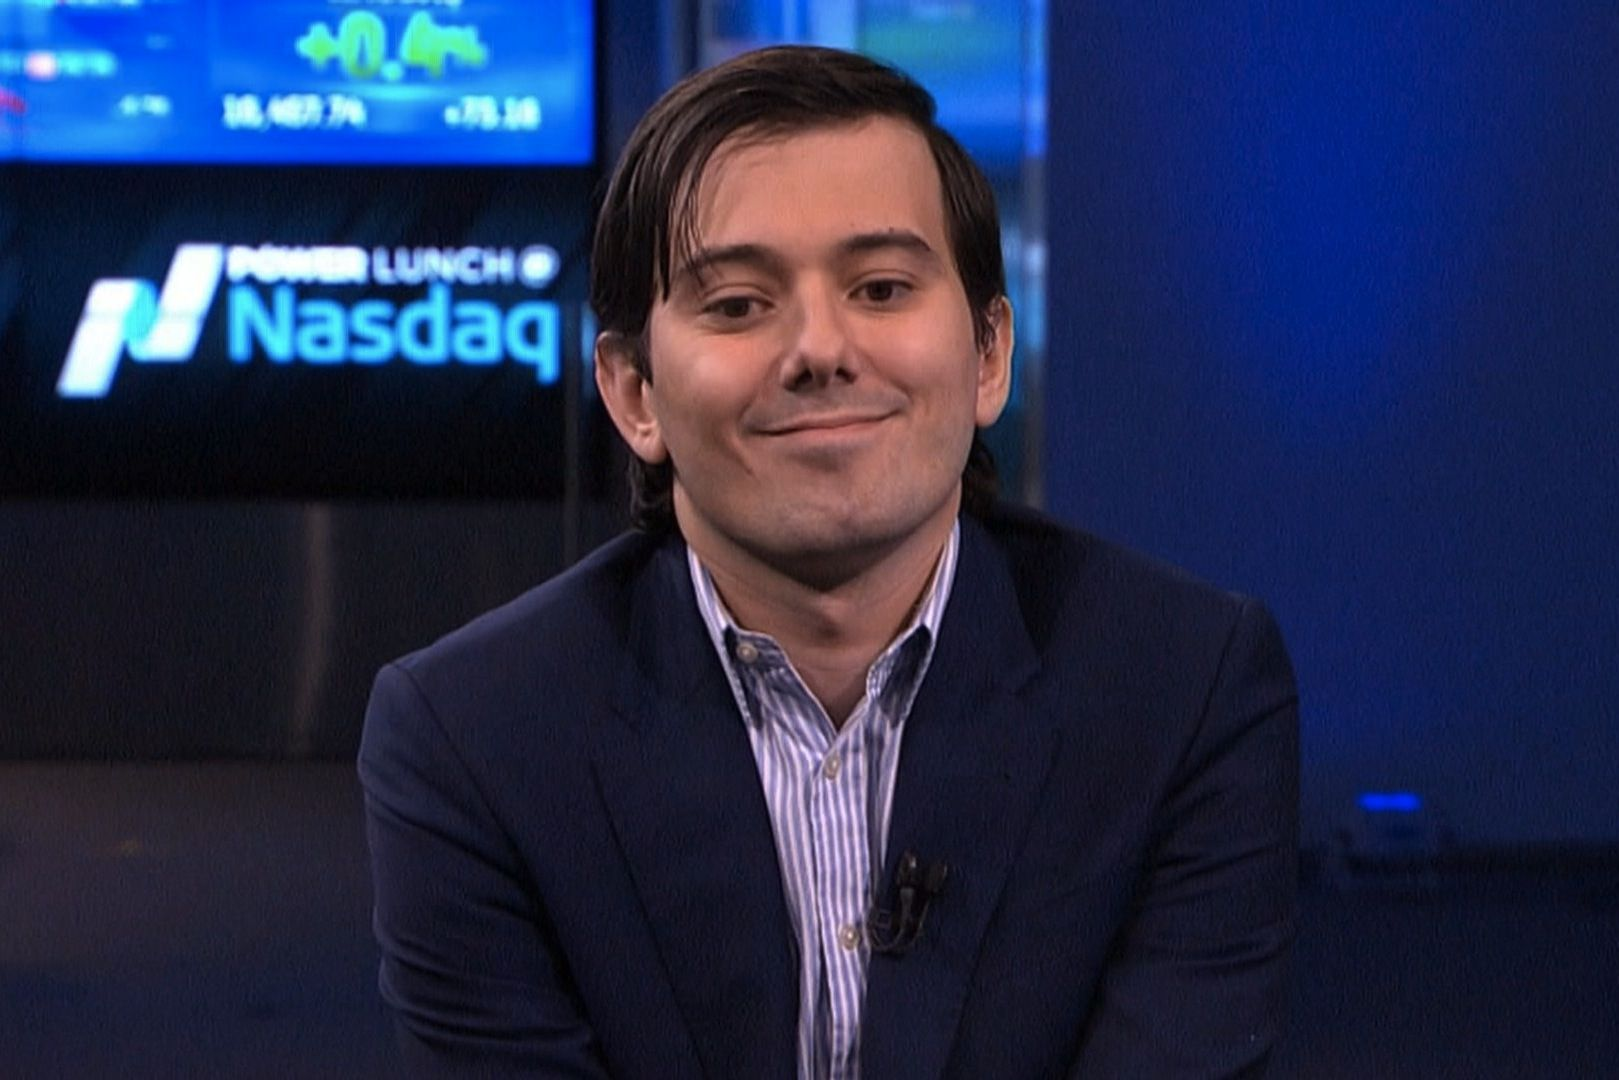 Disgraced pharma boss Martin Shkreli 'cries' as he's jailed for 7 years